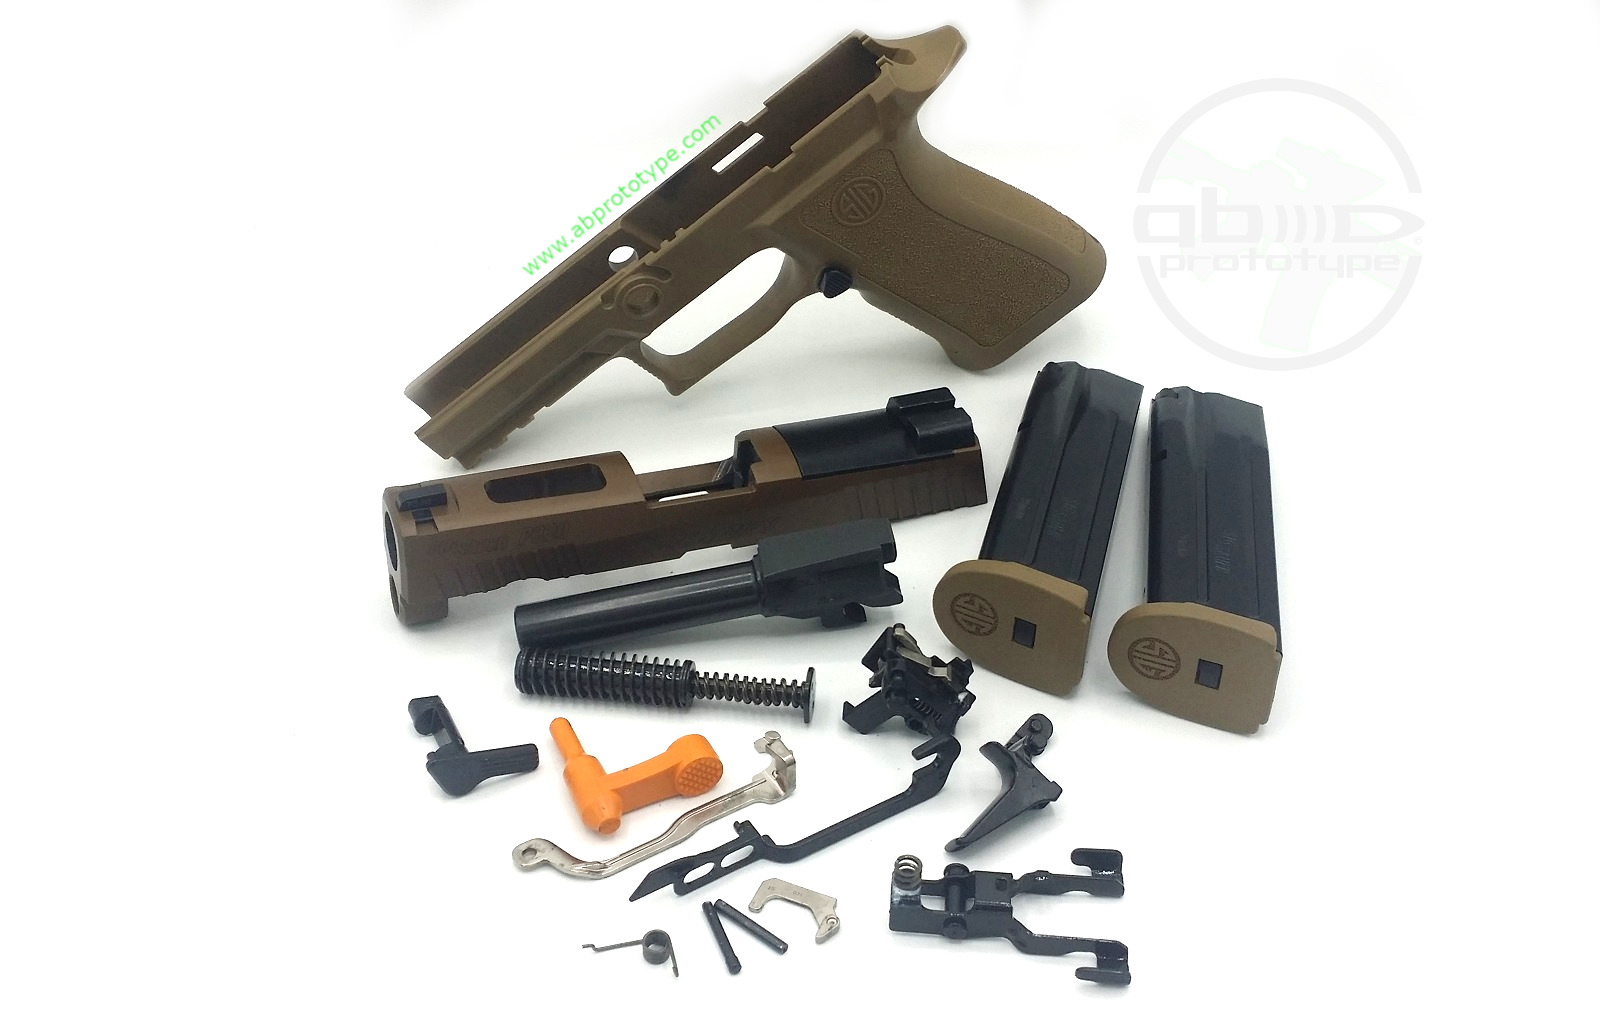 AB Prototype - Firearms Dealer, Parts Kits and More